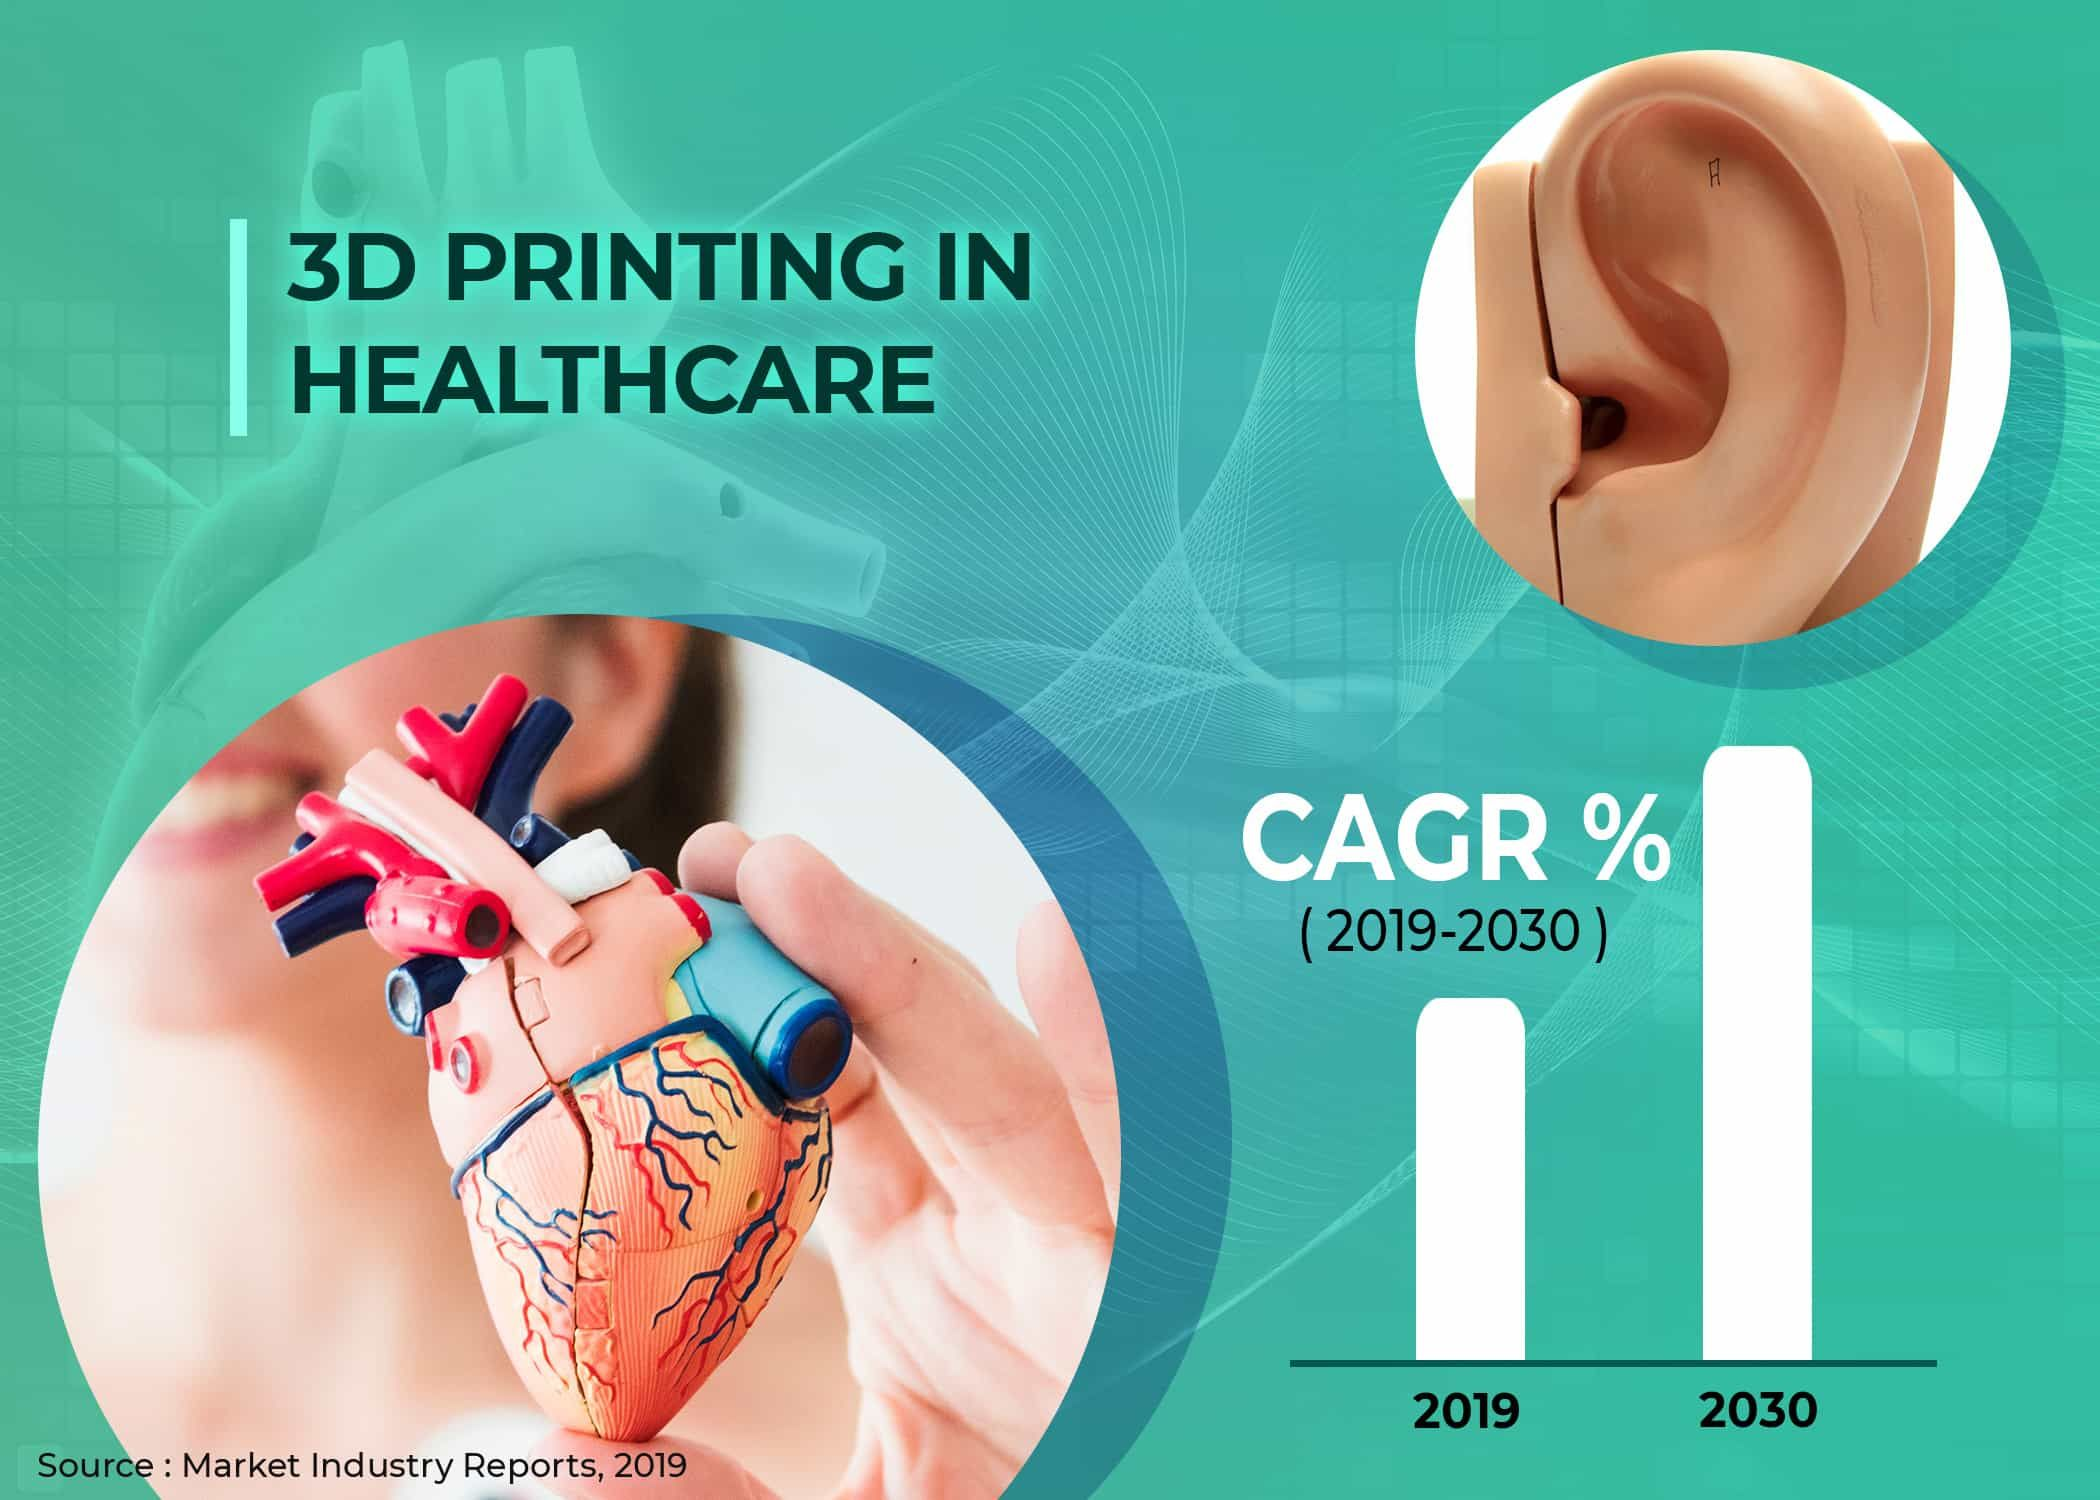 3D Printing in Healthcare Market by Process/Technology